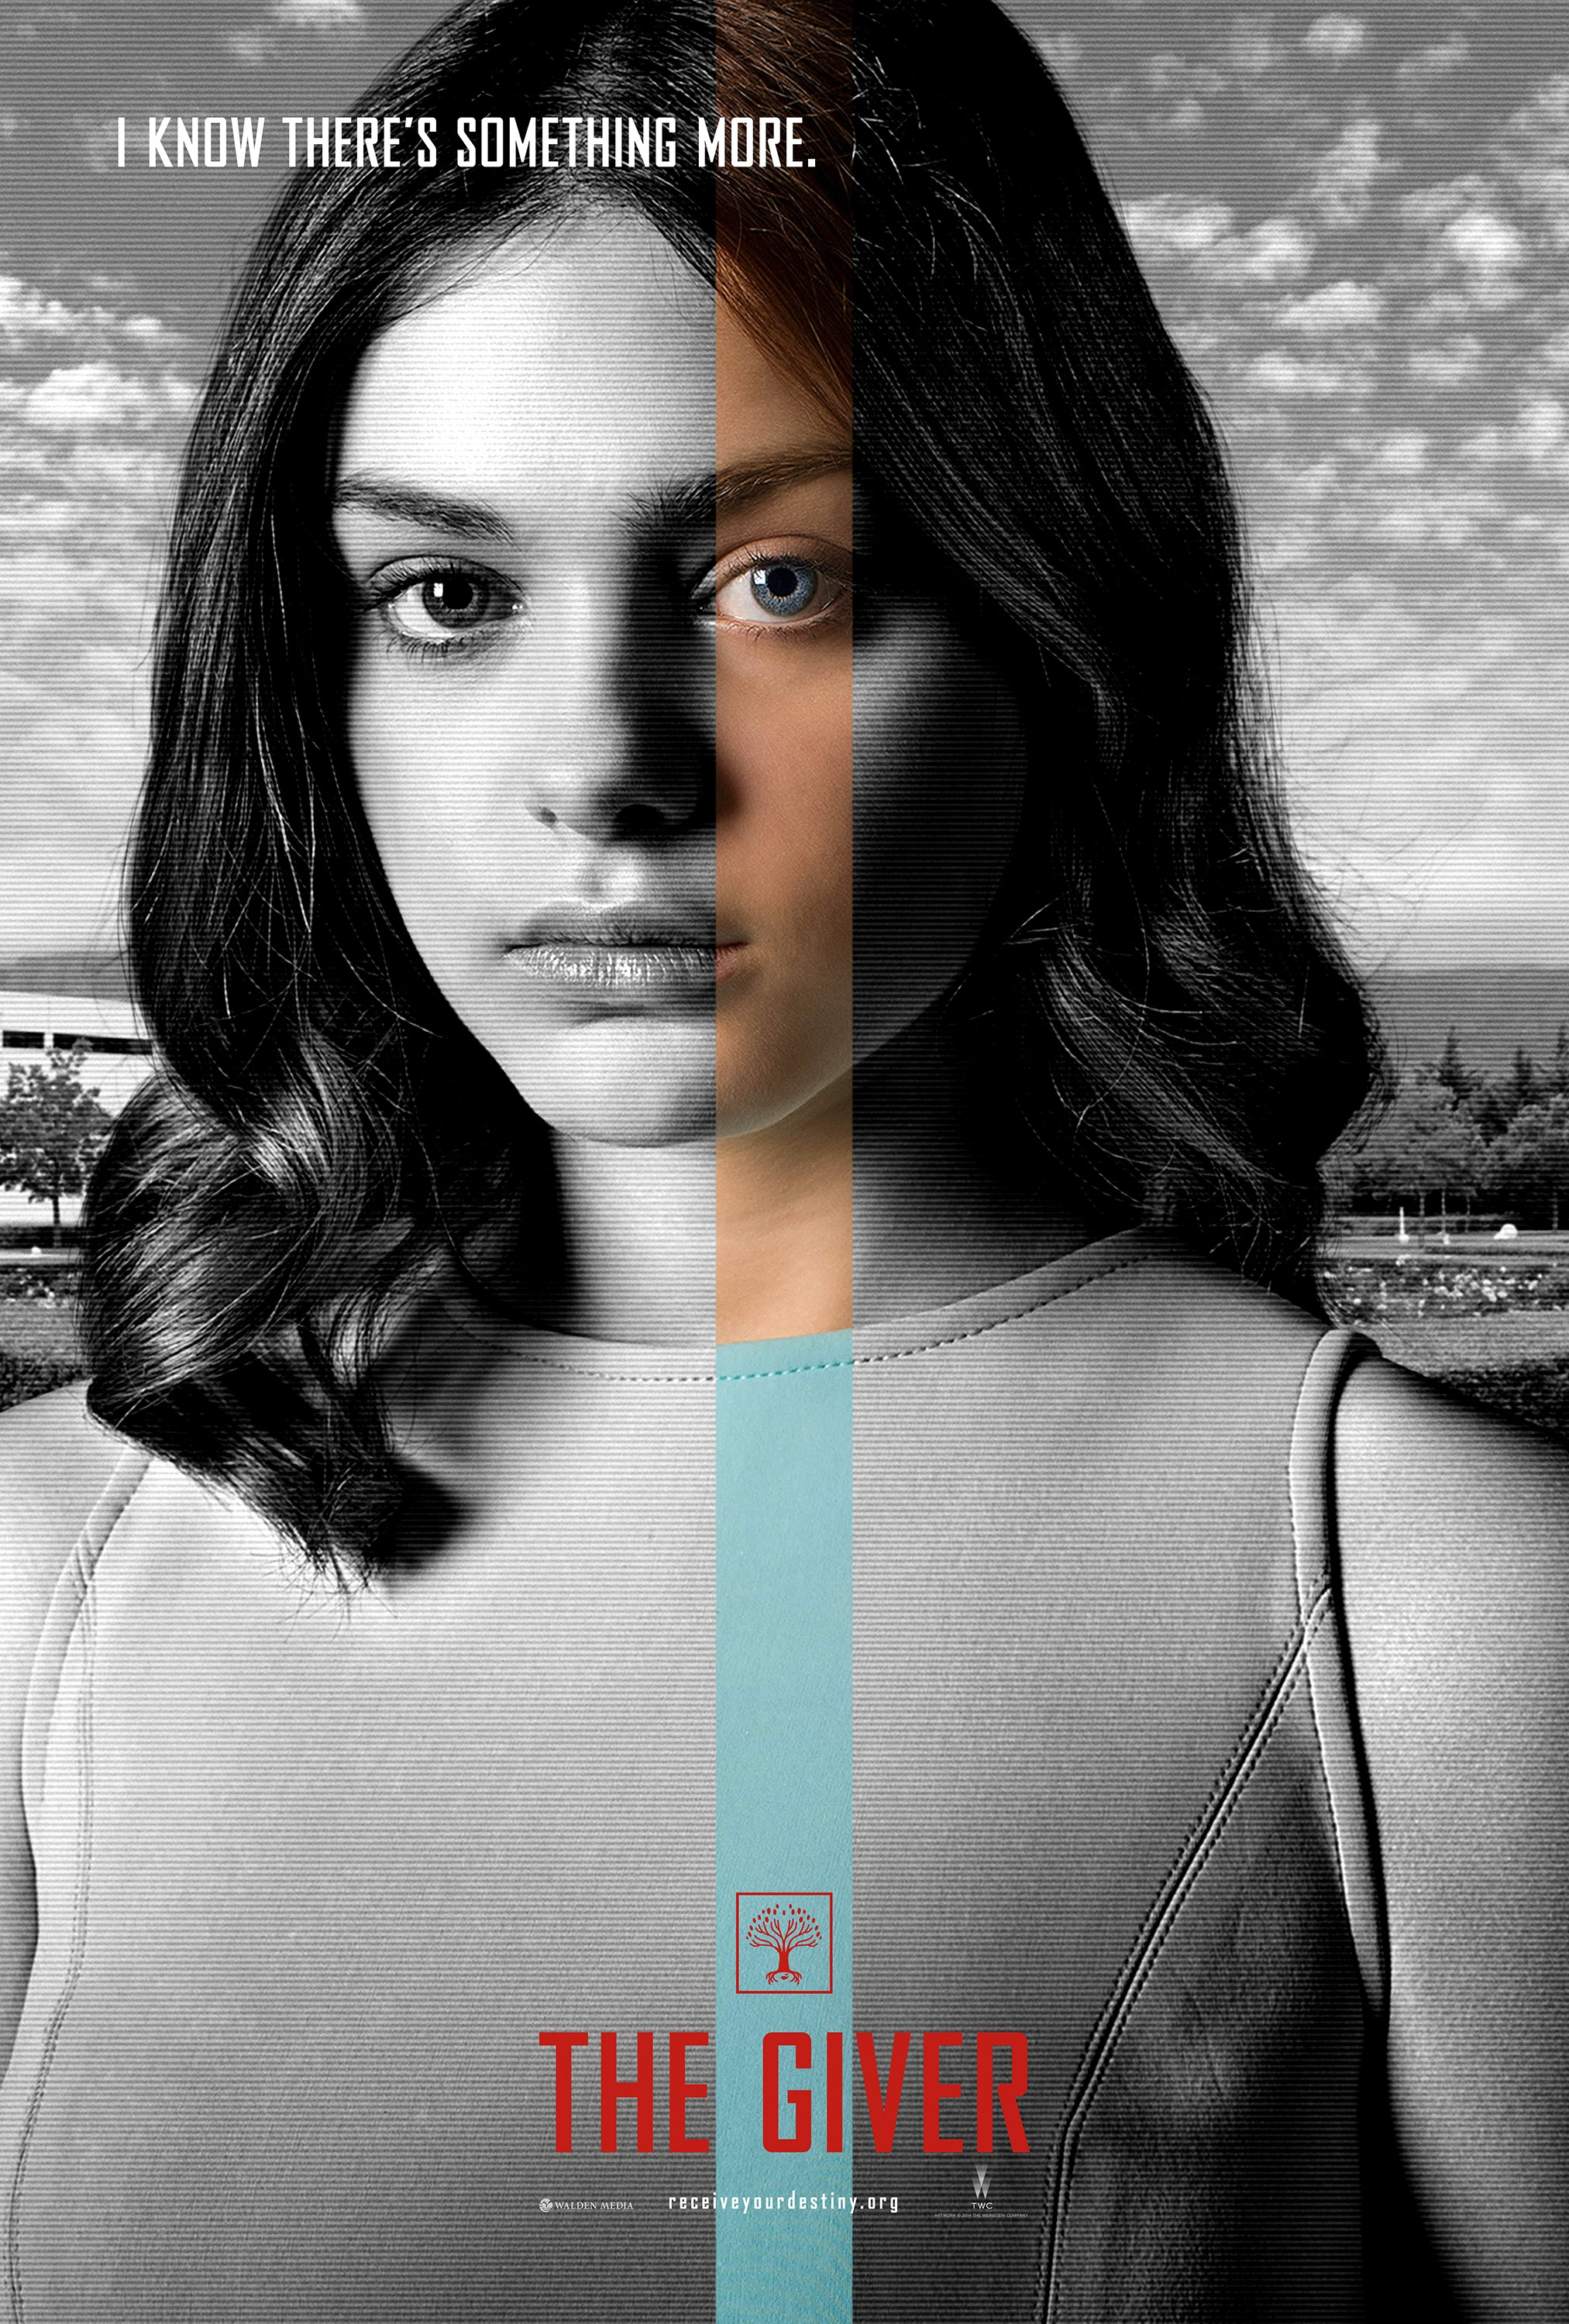 The Giver-Official Poster Banner PROMO XXLG-23MAIO2014-06